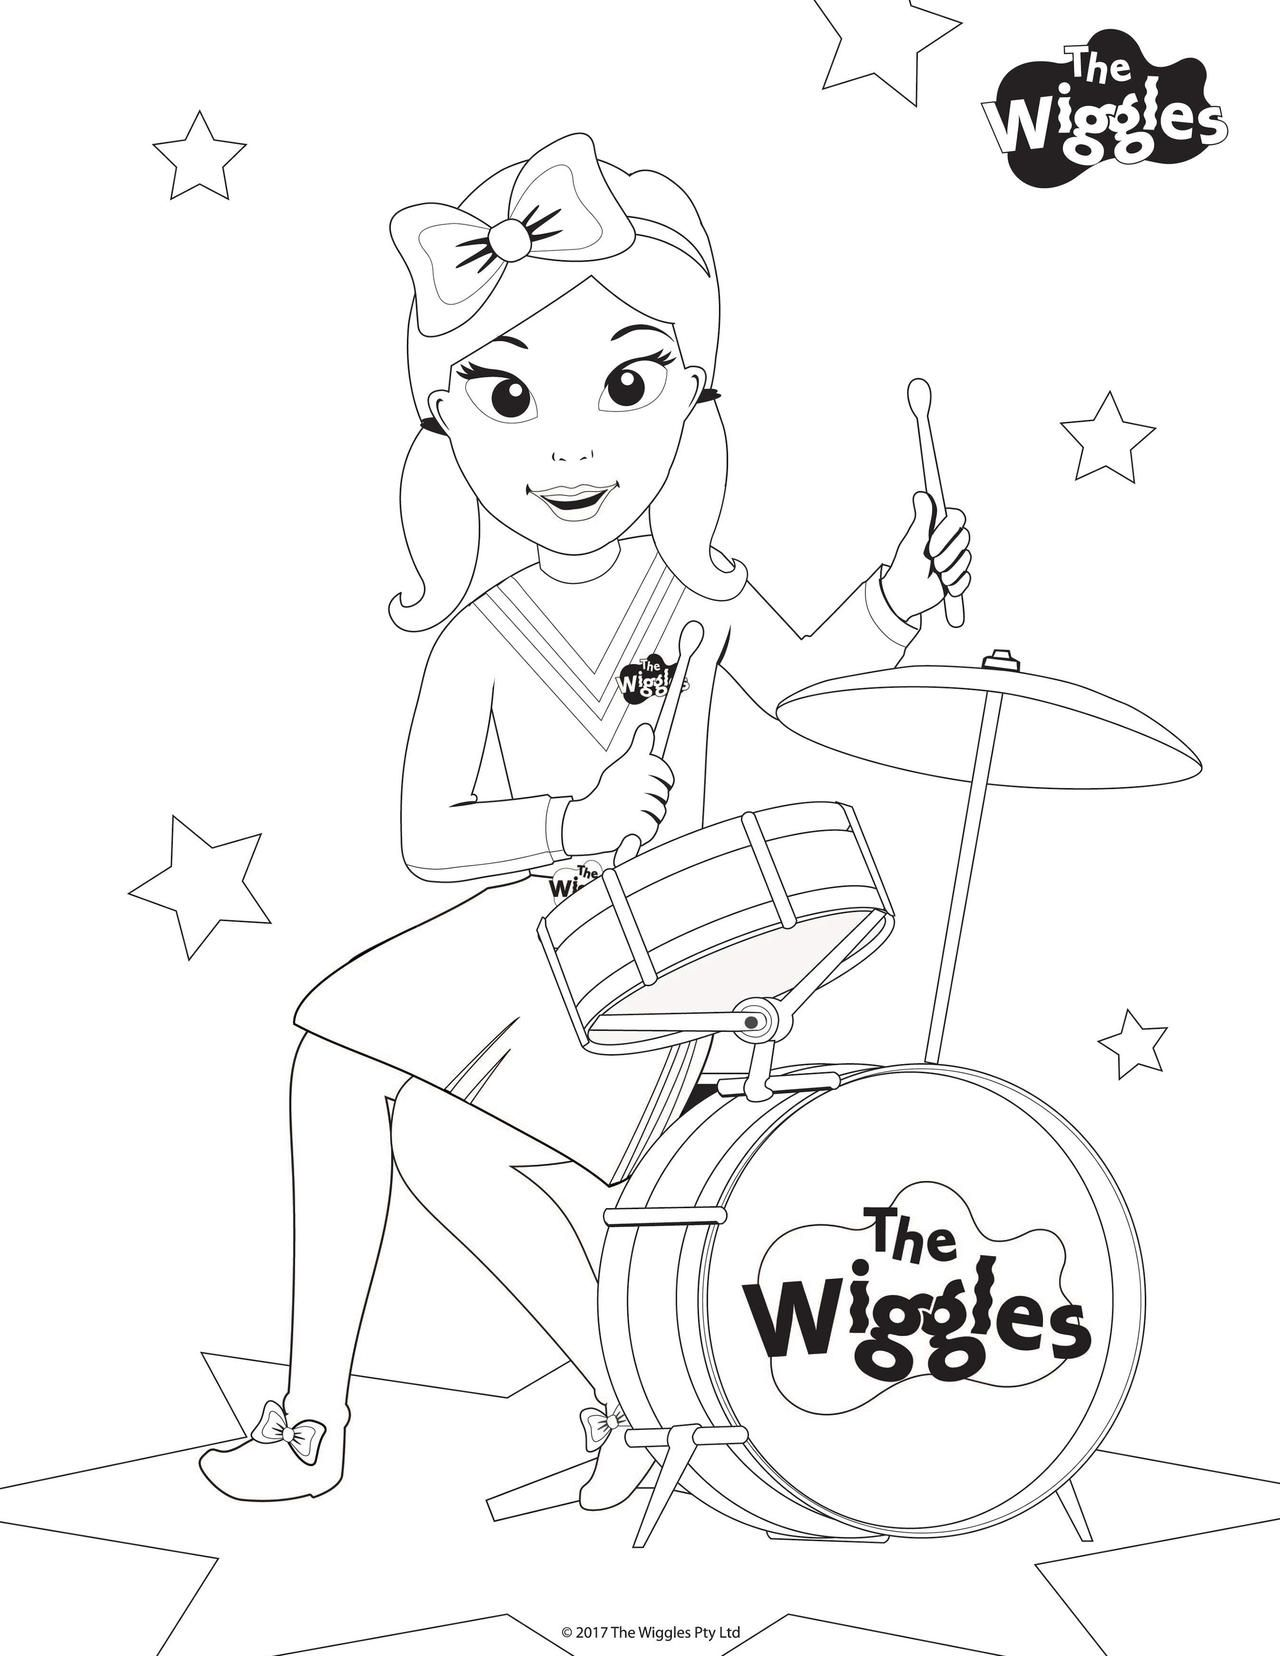 Pin By Julie Coffman On The Wiggles Birthday Party Wiggles Birthday Wiggles Party Emma Wiggle